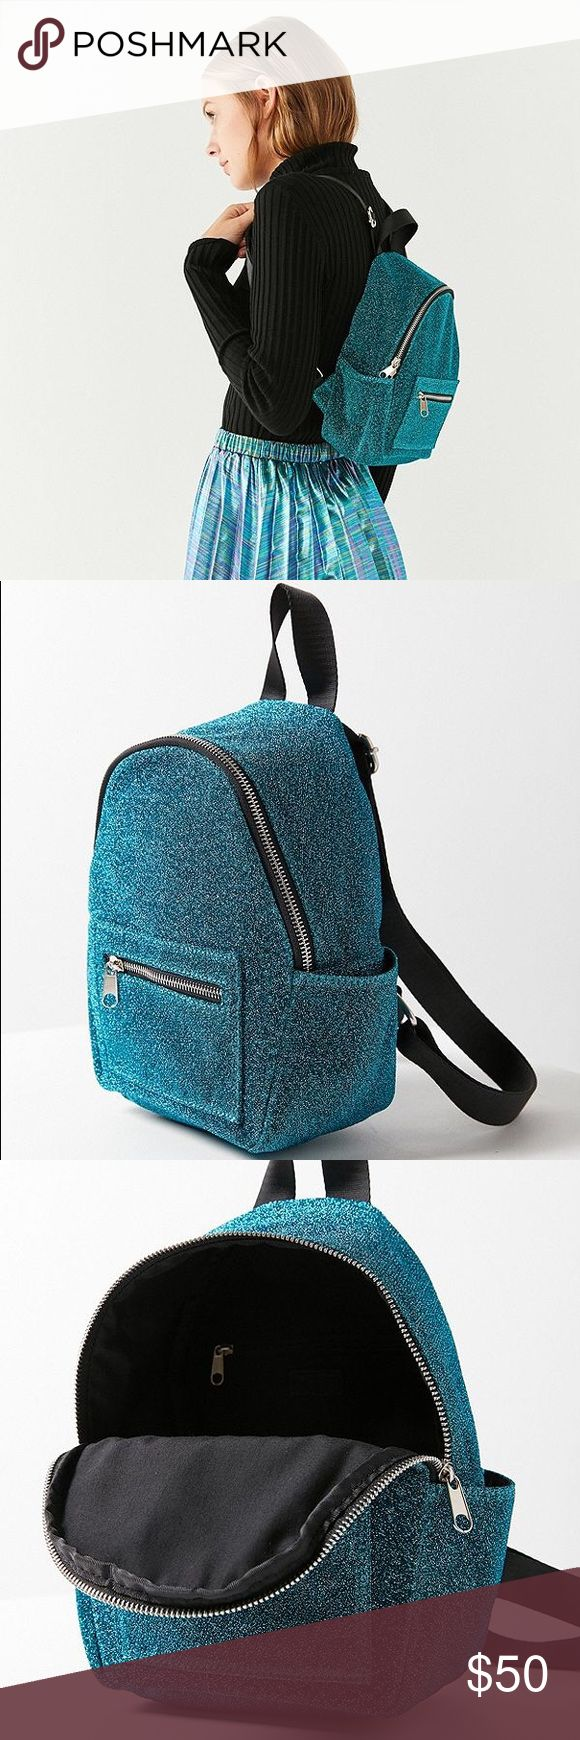 """Turquoise glitter classic mini backpack purse Life's a party so you might as well accessorize accordingly with this glittery mini backpack we're so obsessed with. Kitschy-cute zip-around silhouette with zippered pocket and pouch pockets at sides and front for easy access to your sunglasses + phone. Finished with adjustable shoulder straps and a top carrying handle.  Content + Care - Spot clean   Size - Length: 7.5"""" - Width: 4.5"""" - Height: 10"""" - Handle drop: 4"""" 1.25 Bags"""